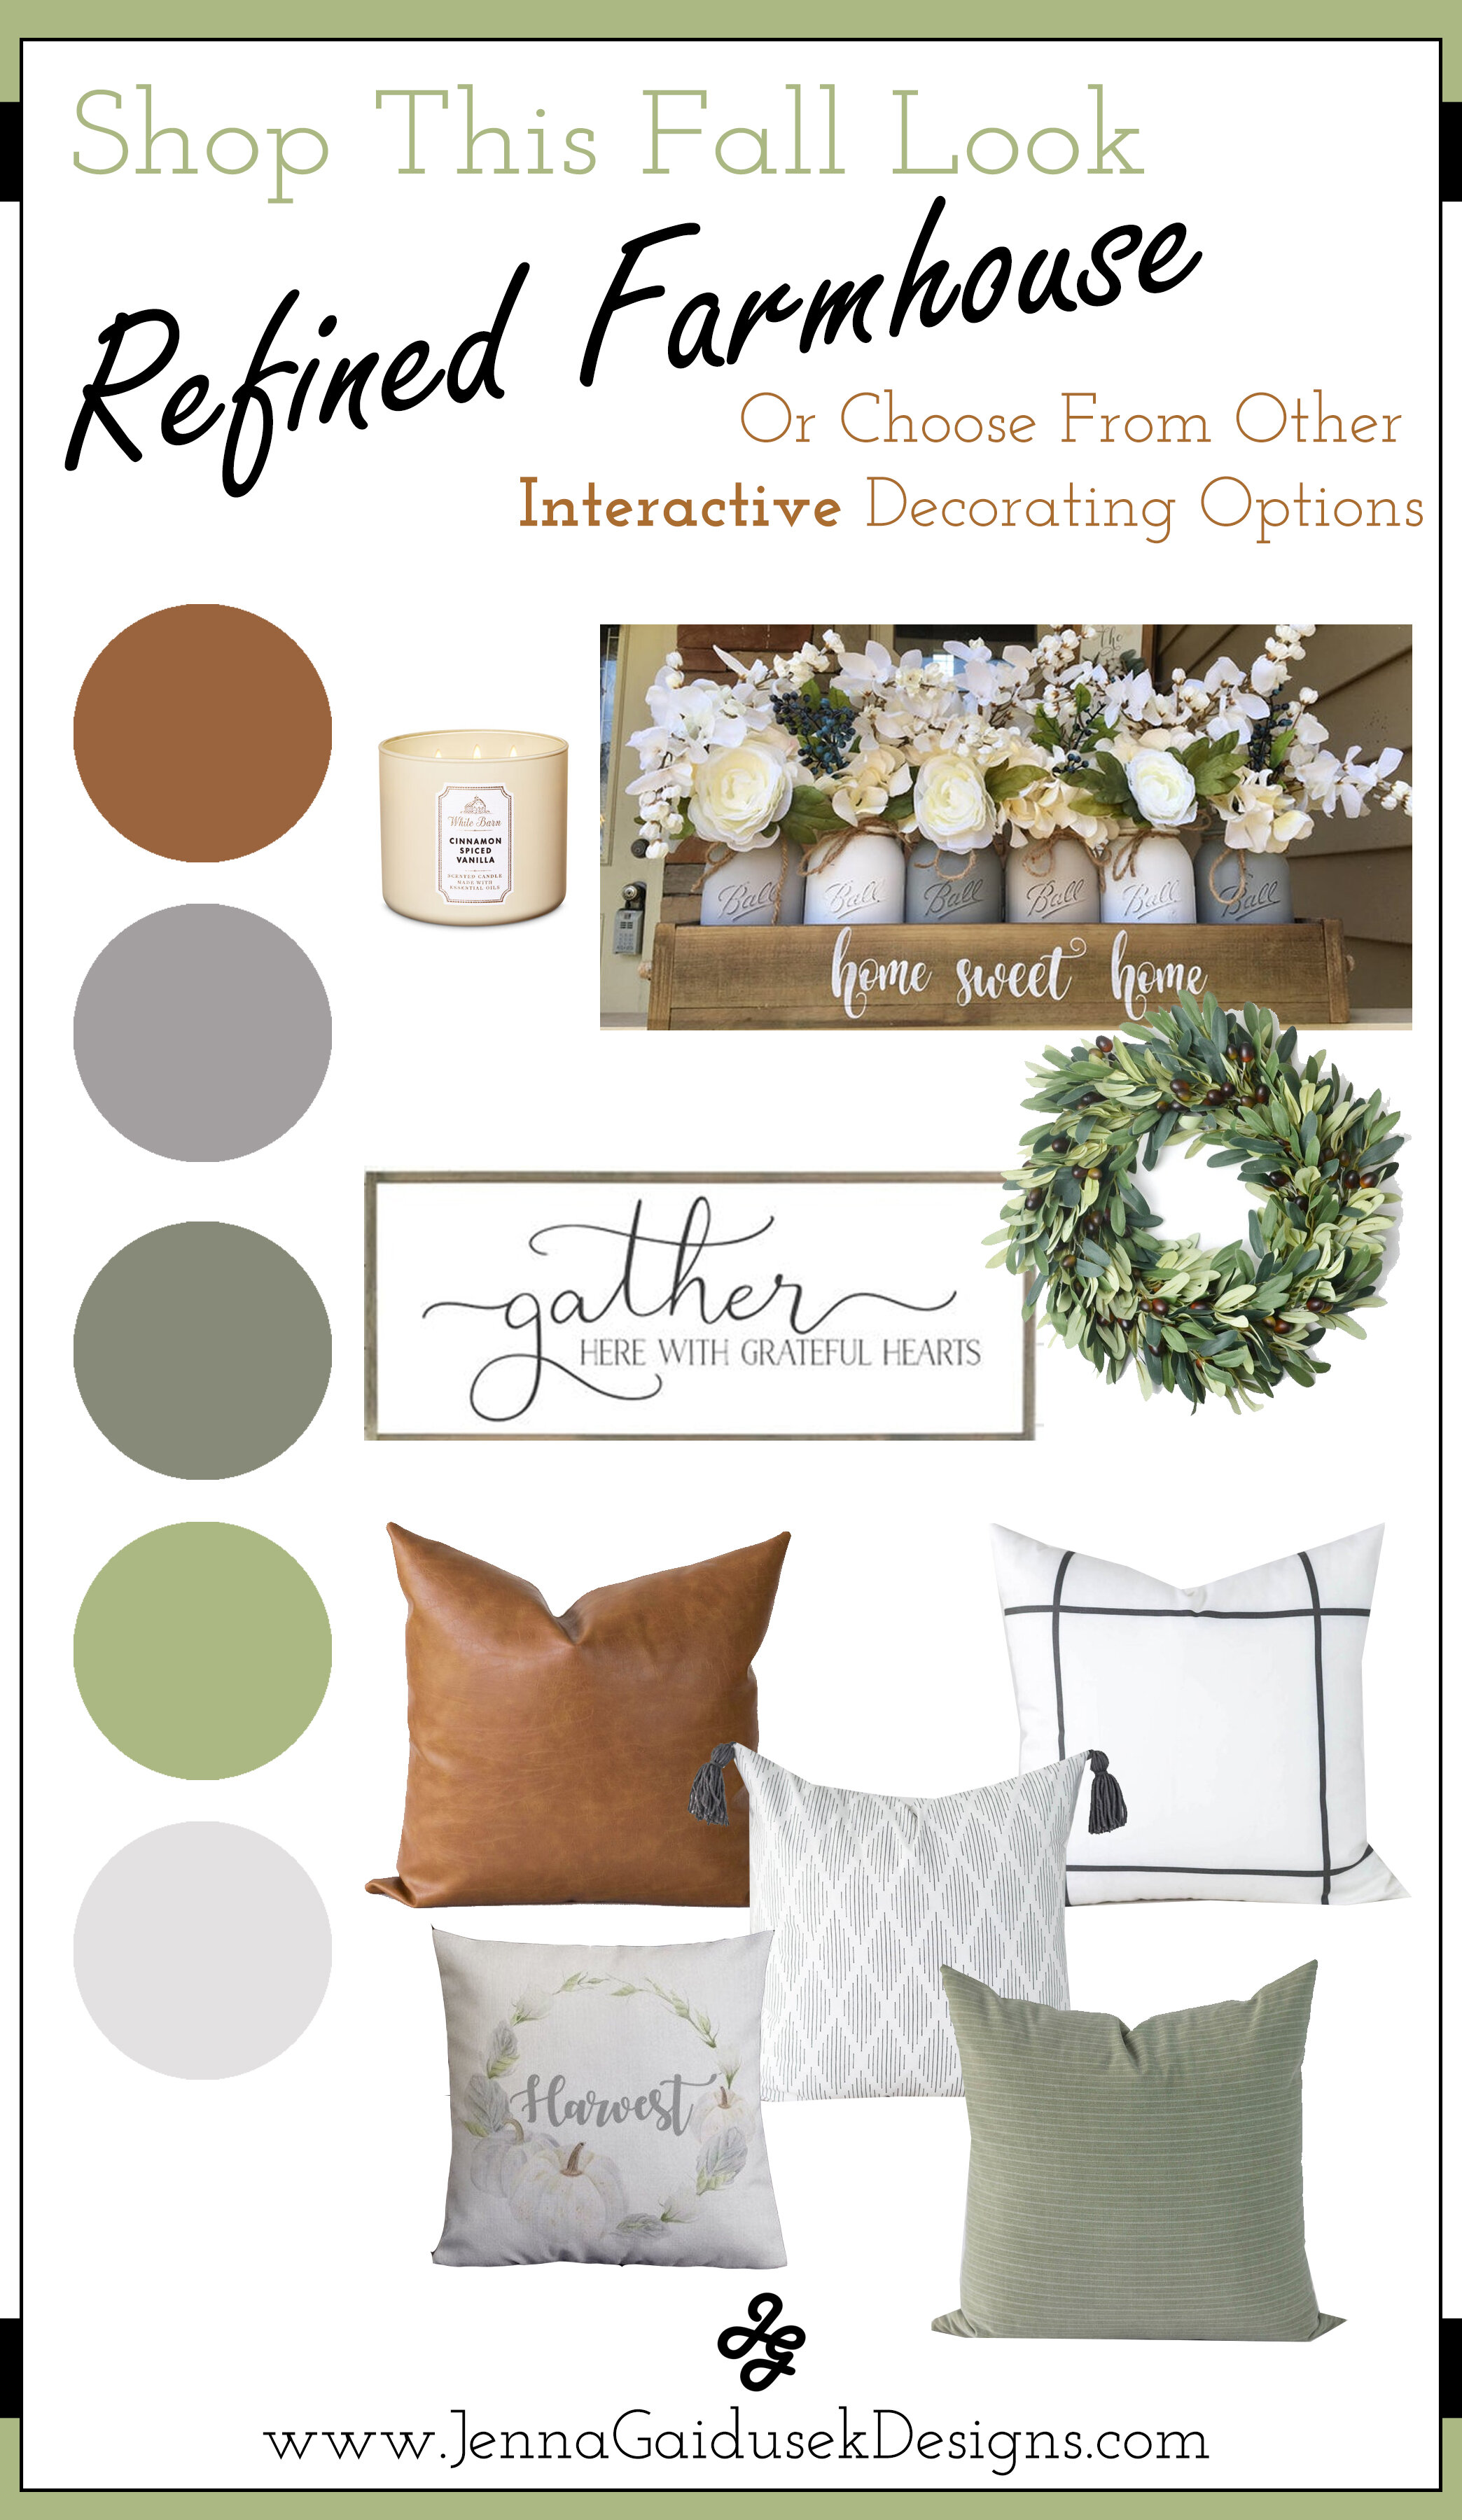 Get your free fall decorating style guide! Shop the sophisticated refined farmhouse home decor based on your fall color scheme for this year. Add new pillows, fall wall decor, wood signs and more. All expertly designed by eDesigner, Jenna Gaidusek and sourced from Etsy small businesses. Get ready for entertaining your family and friends this Thanksgiving and Christmas season with these fresh fall decor styles! #modernfarmhouse #falldecor #decorateforfall #fallstyle